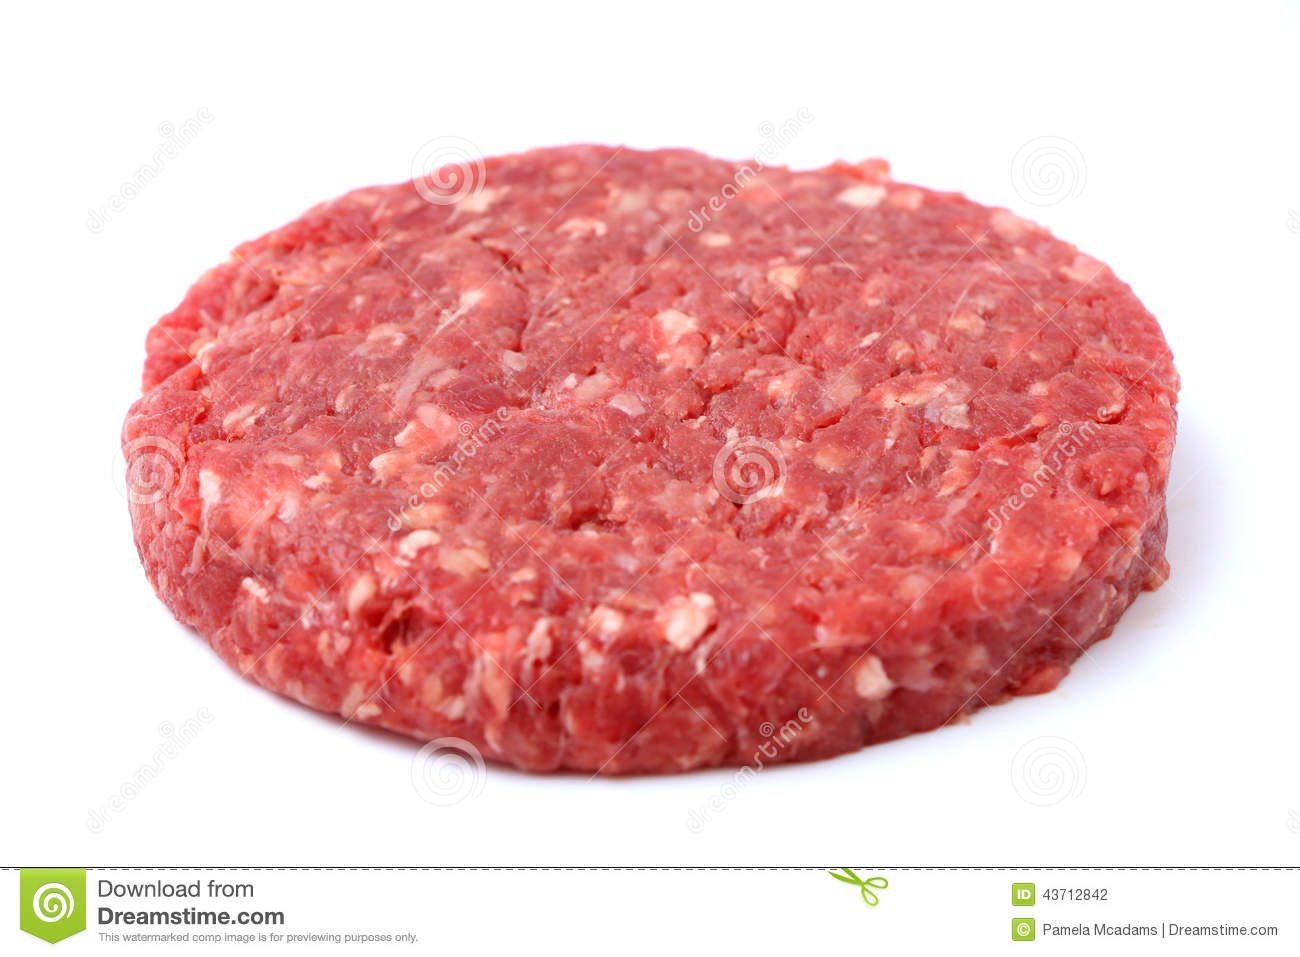 Raw hamburger patty isolated on a white background.